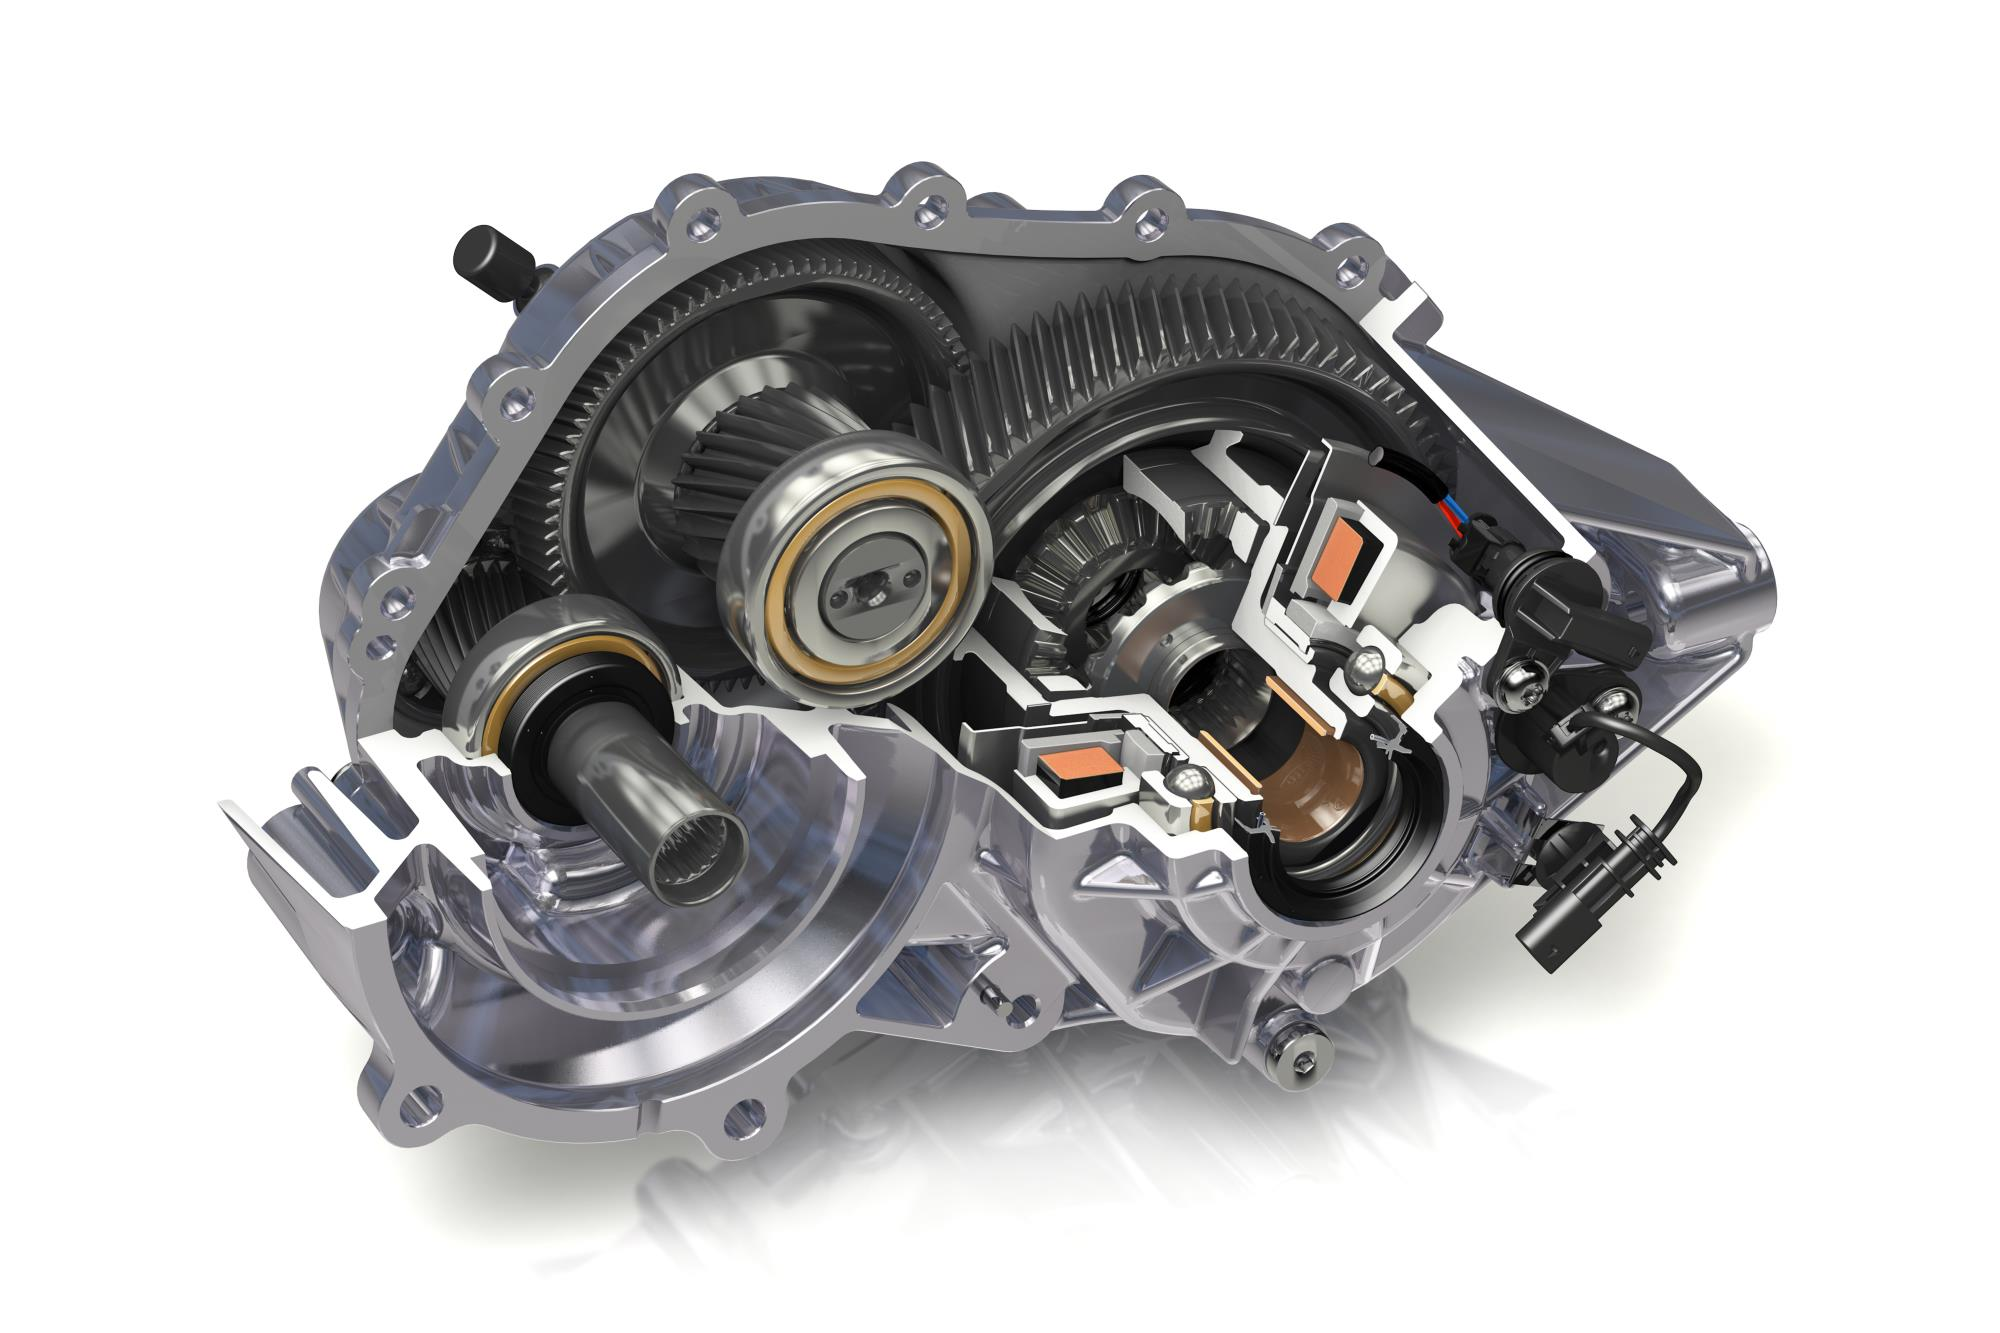 GKN electric all-wheel drive